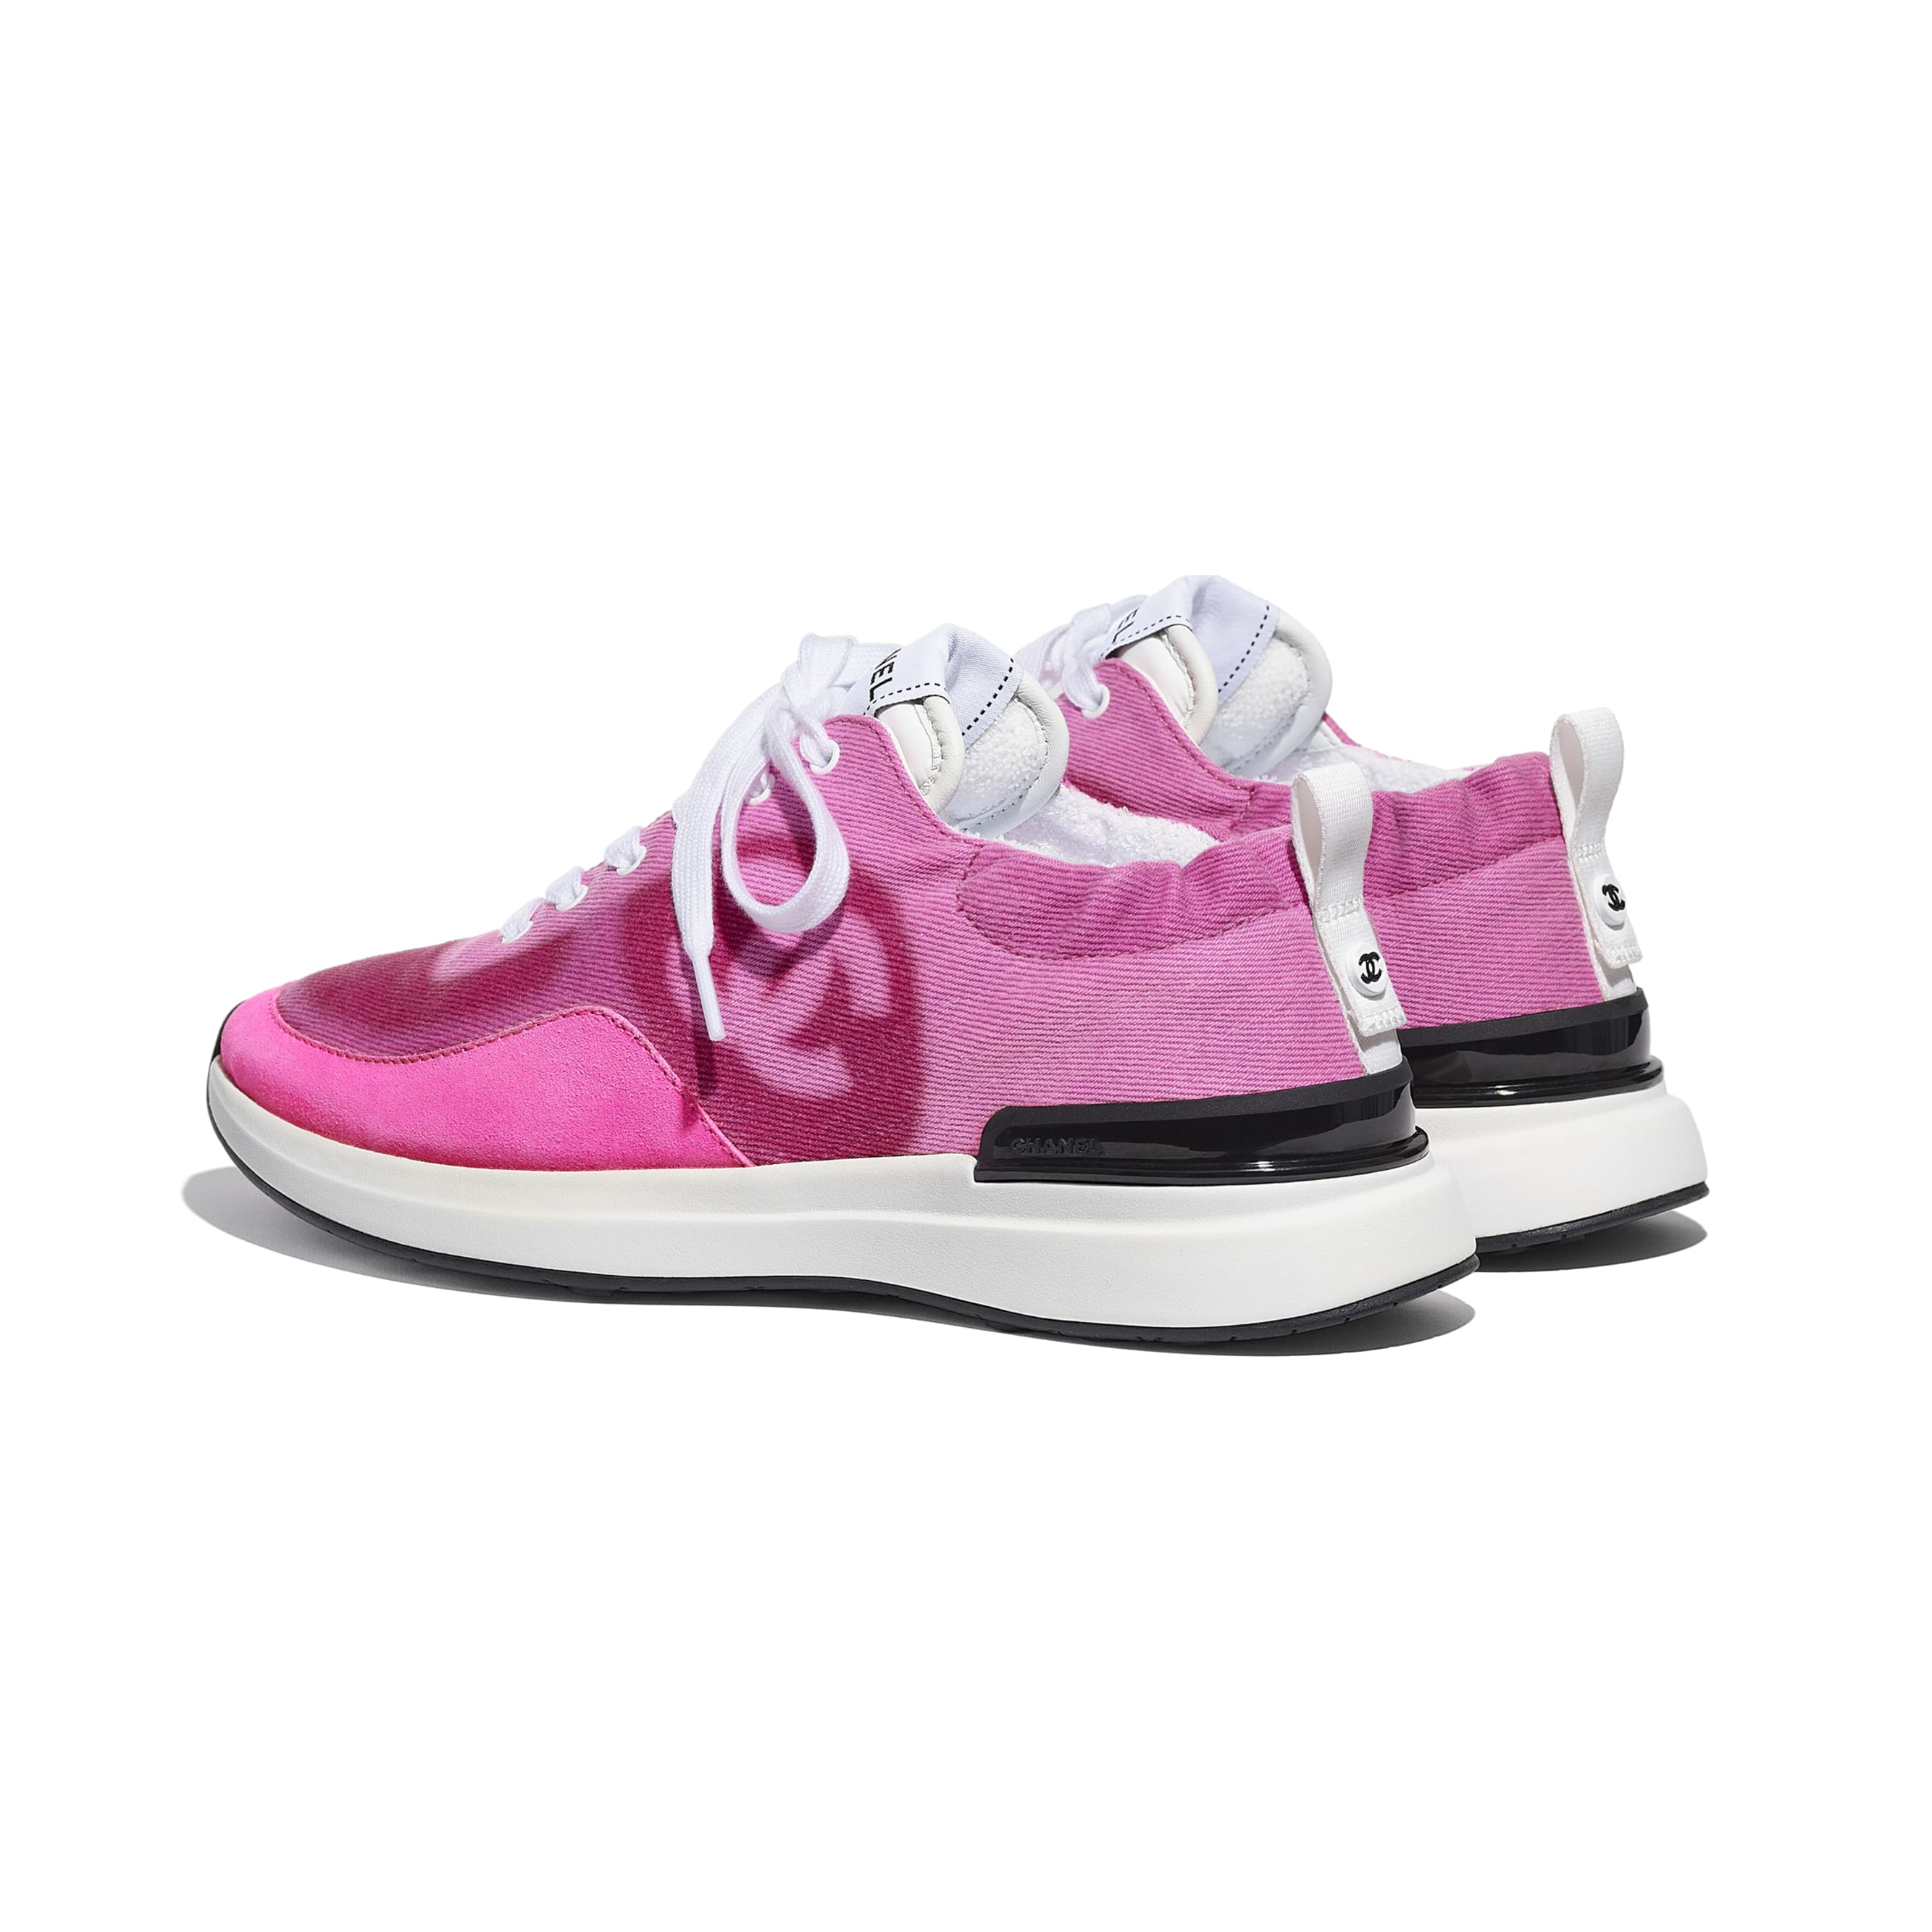 Trainers - Neon Pink - Denim & Suede Calfskin - CHANEL - Other view - see standard sized version